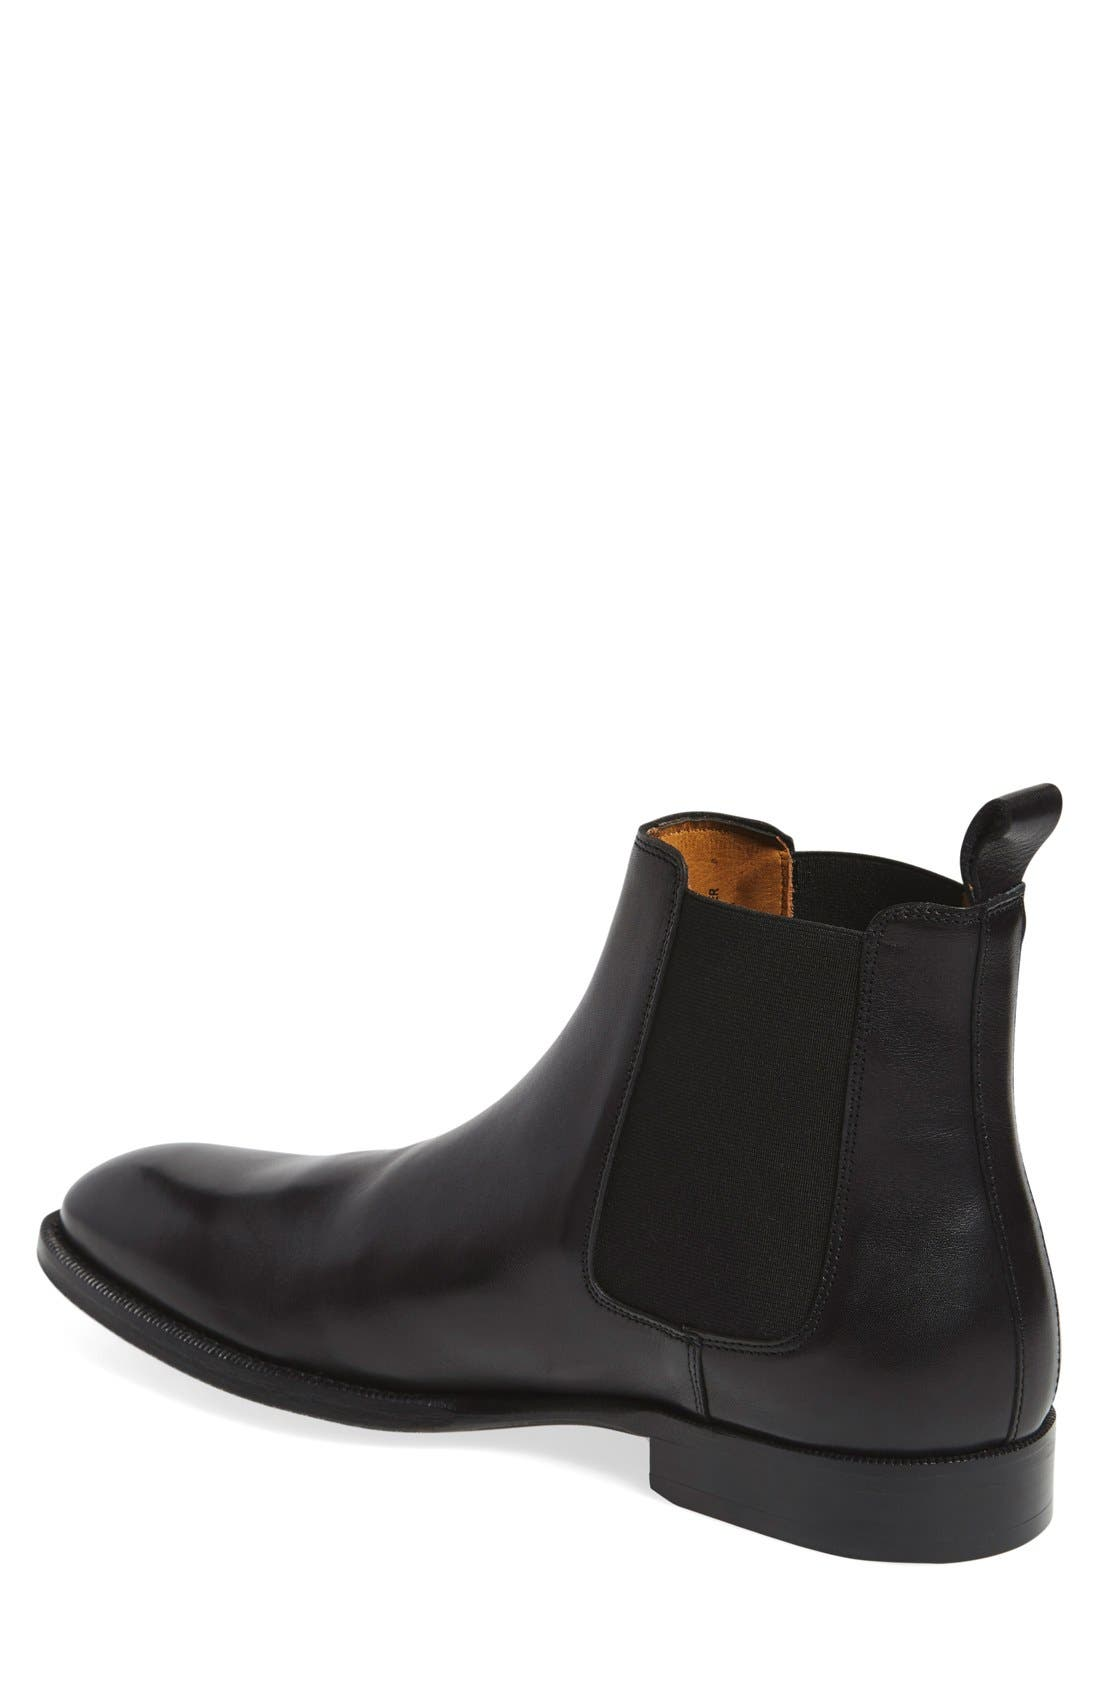 'Bradbury' Chelsea Boot,                             Alternate thumbnail 2, color,                             001